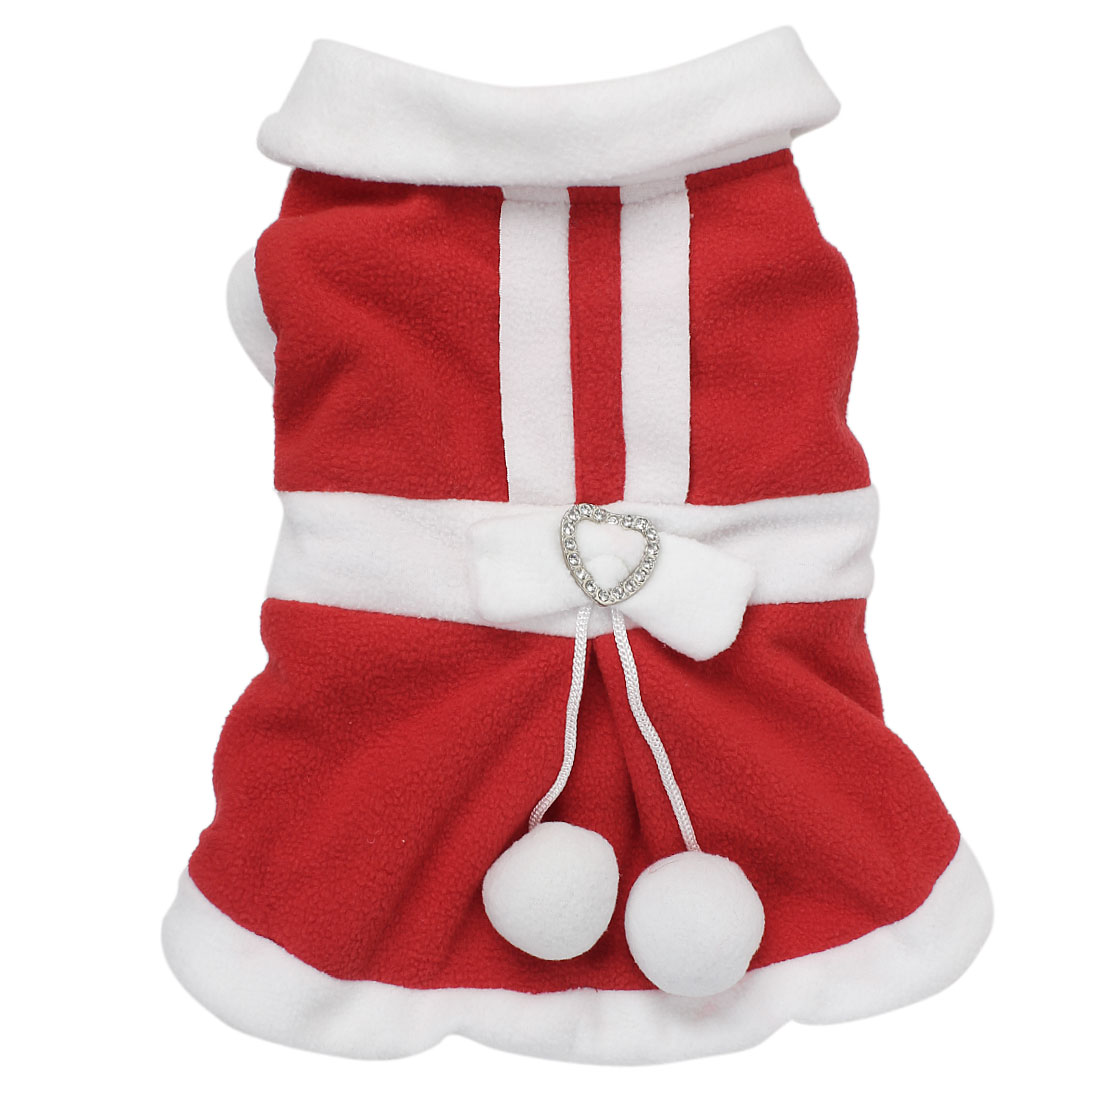 Pet Puppy Dog Bowknot Merry Christmas Warm Coat Jacket Costume Red Size M